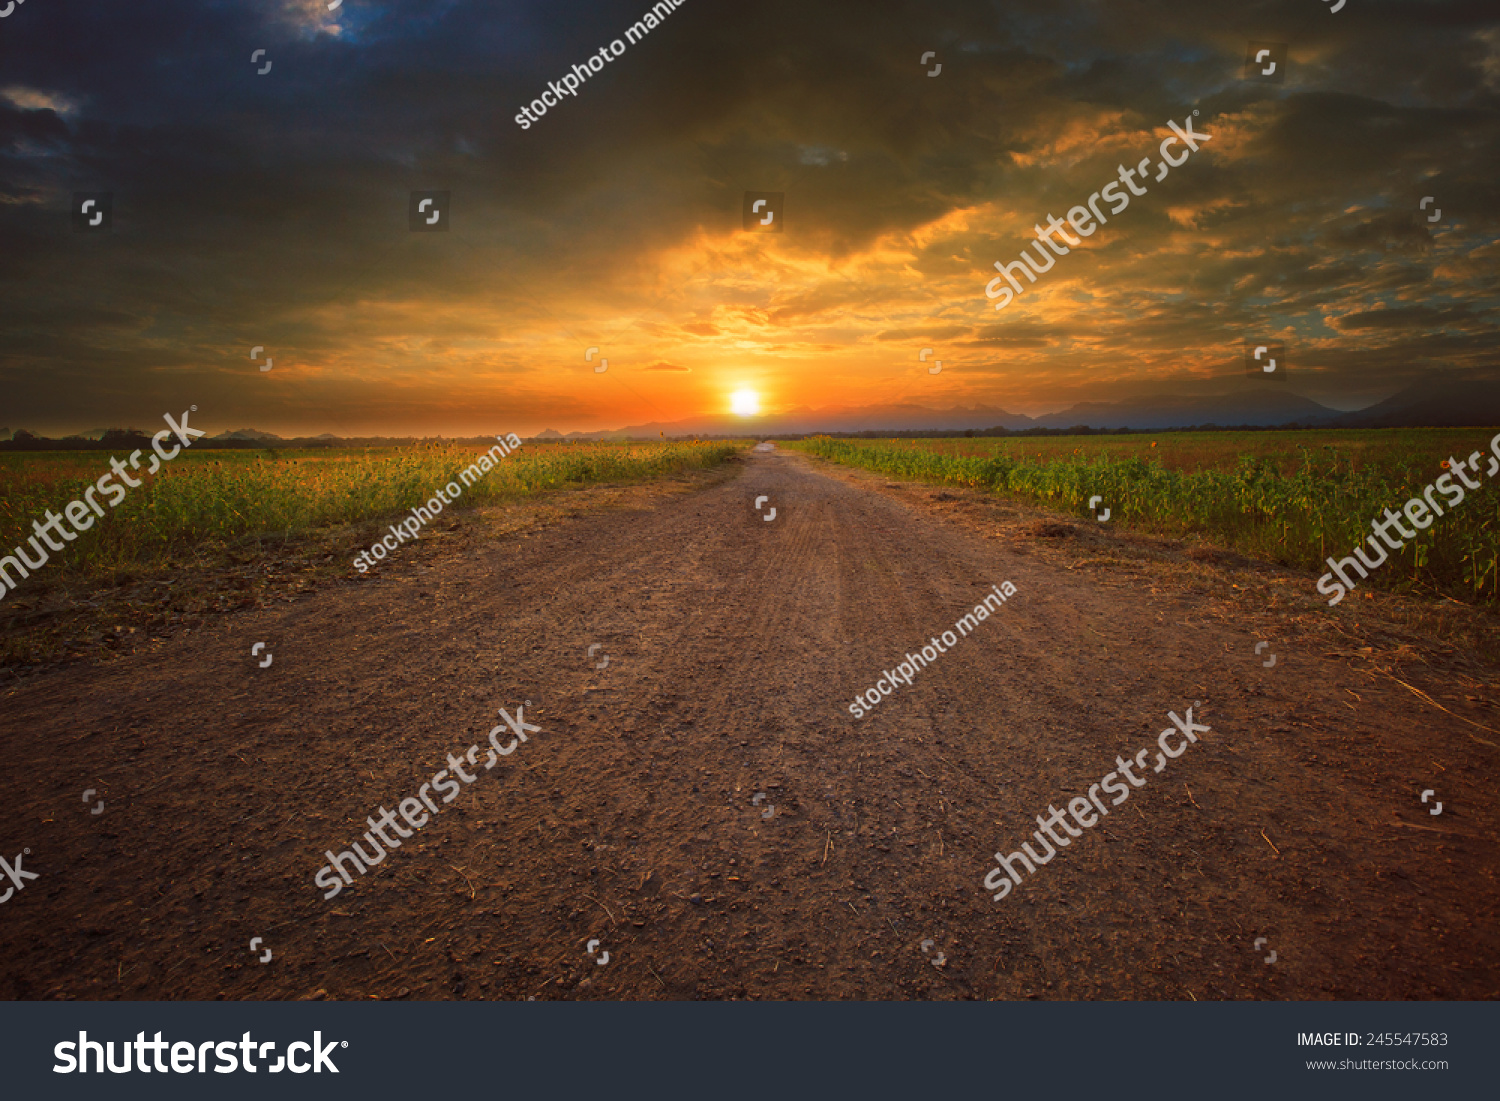 stock-photo-beautiful-land-scape-of-dust